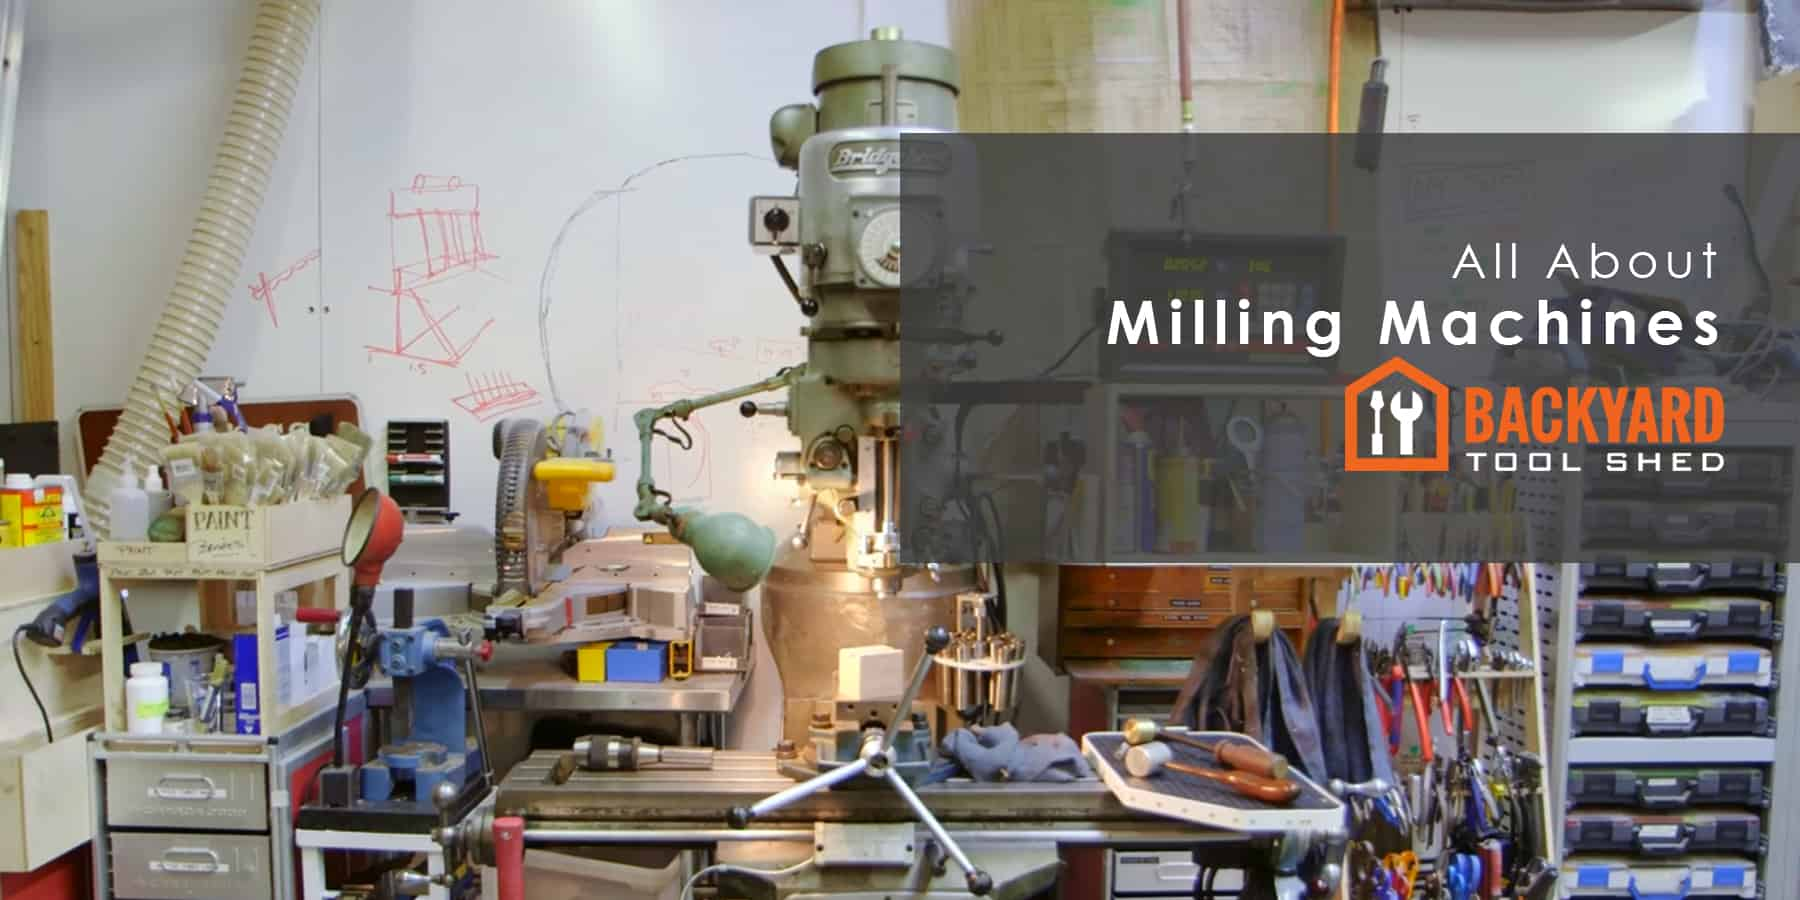 All About Milling Machine and Their Materials